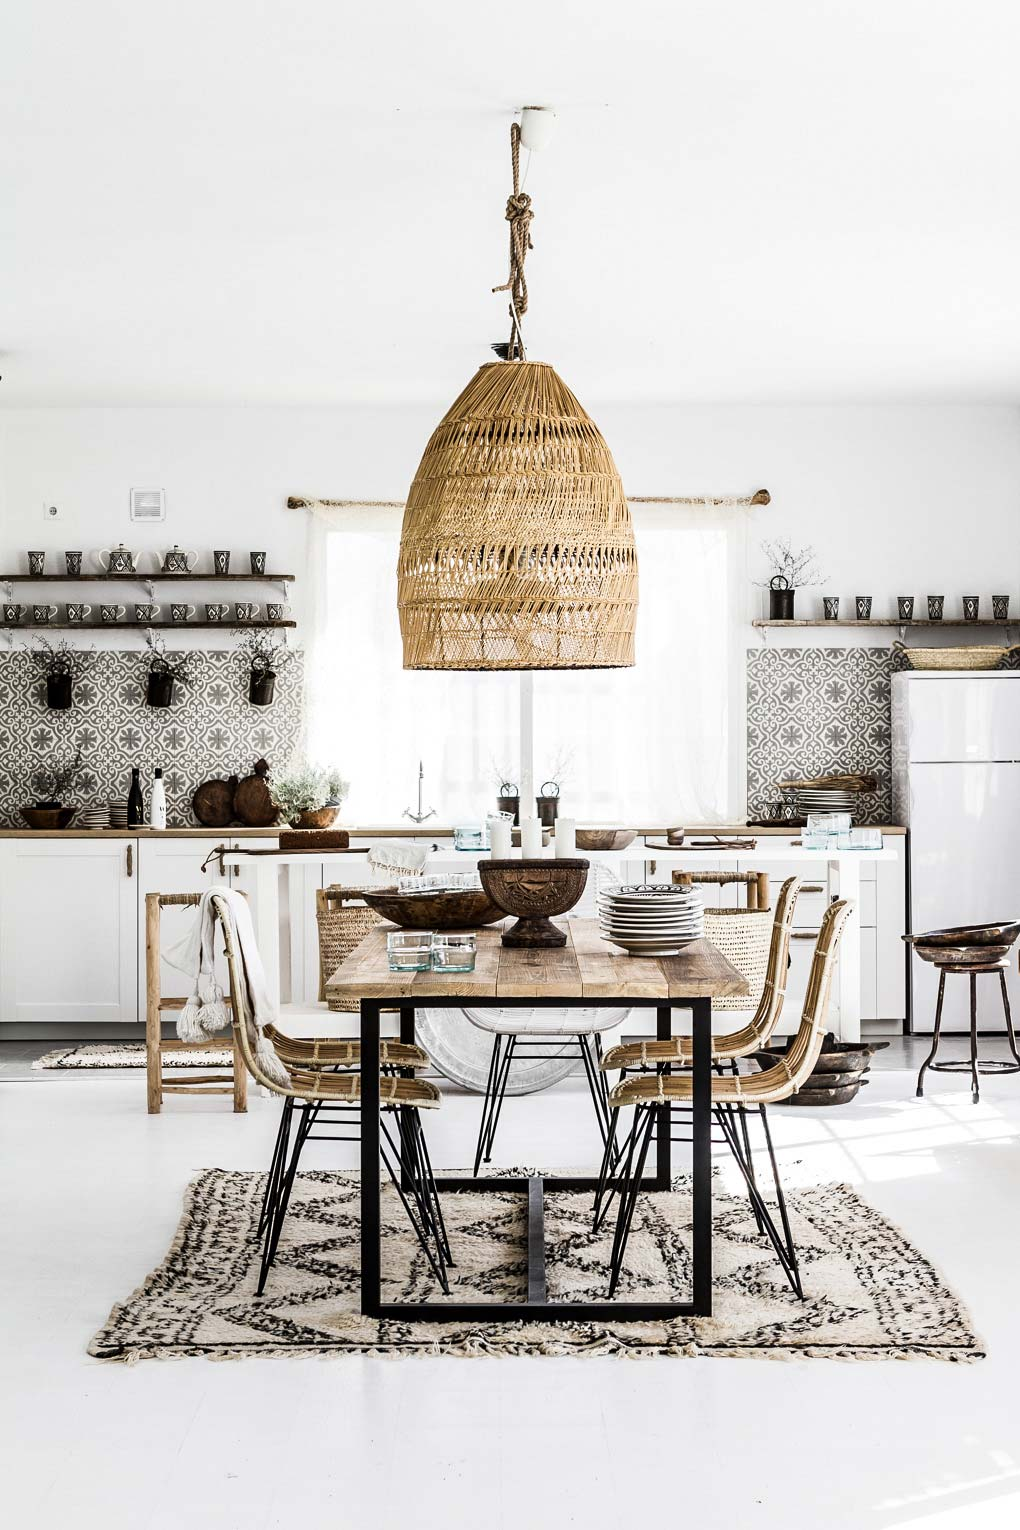 Moroccan style pendant light in kitchen